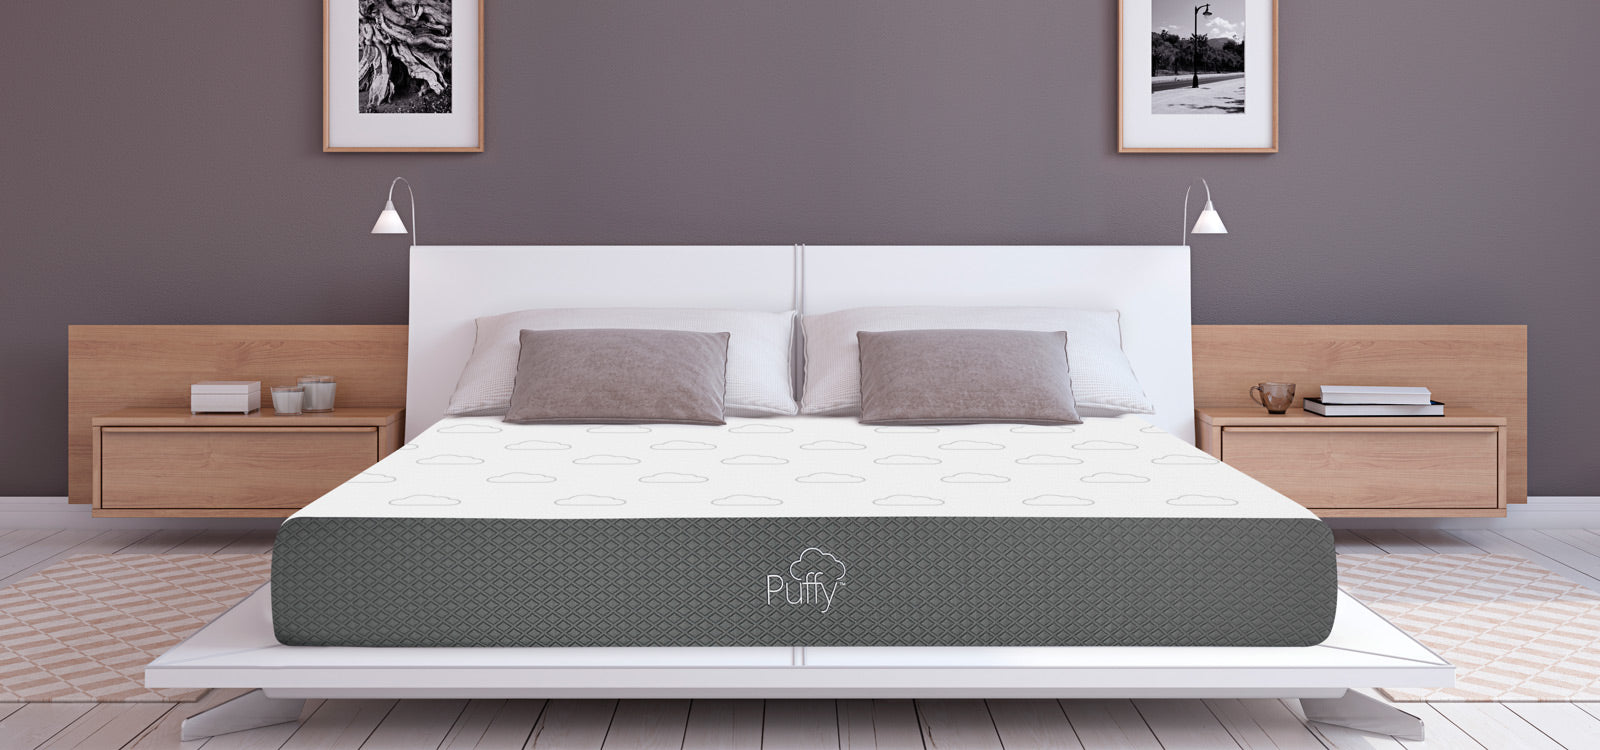 Puffy Memory Foam Mattress